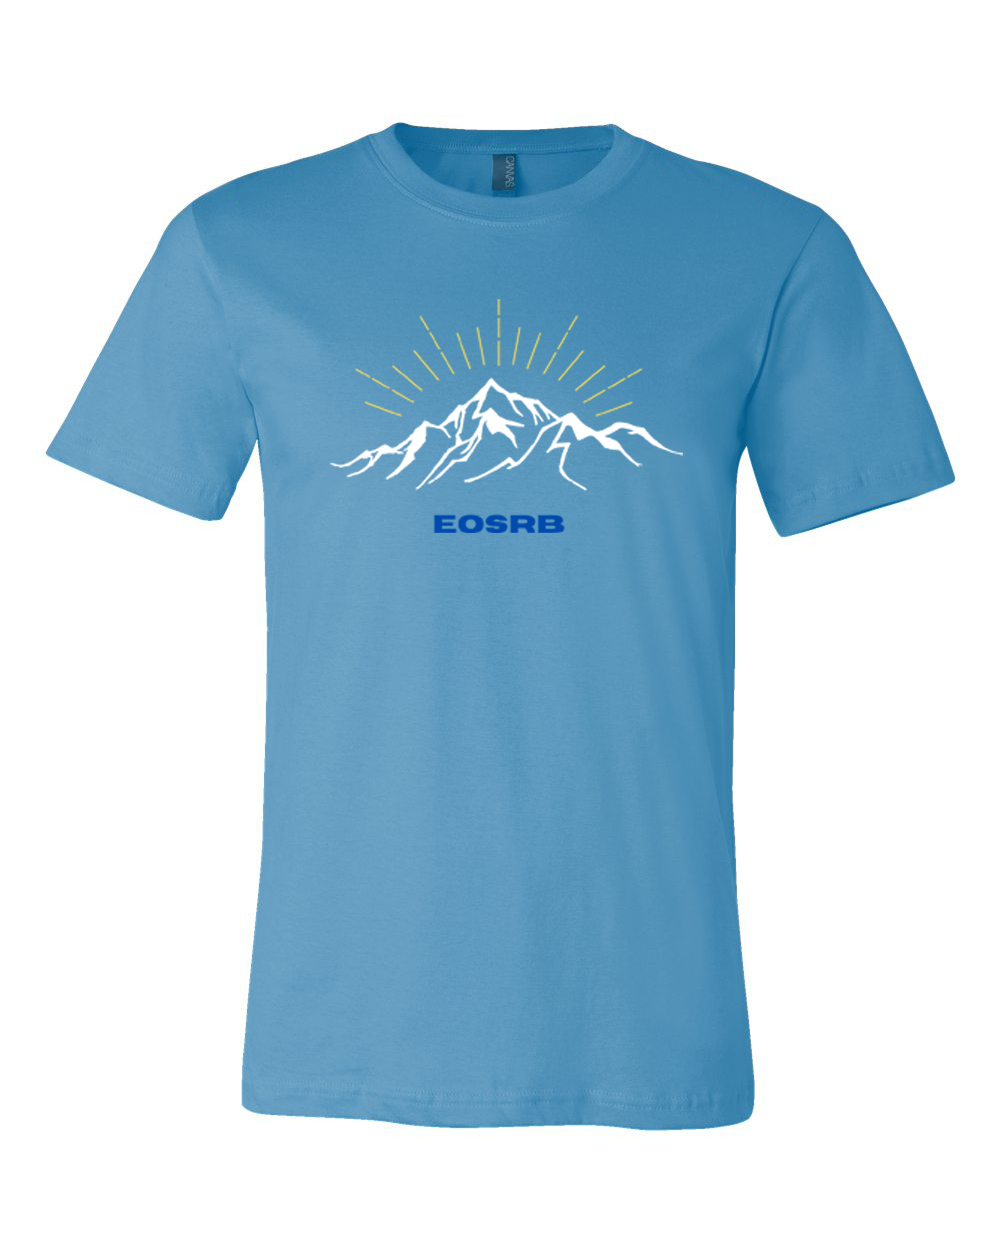 Elements of Something Really Beautiful : Mountain Tee